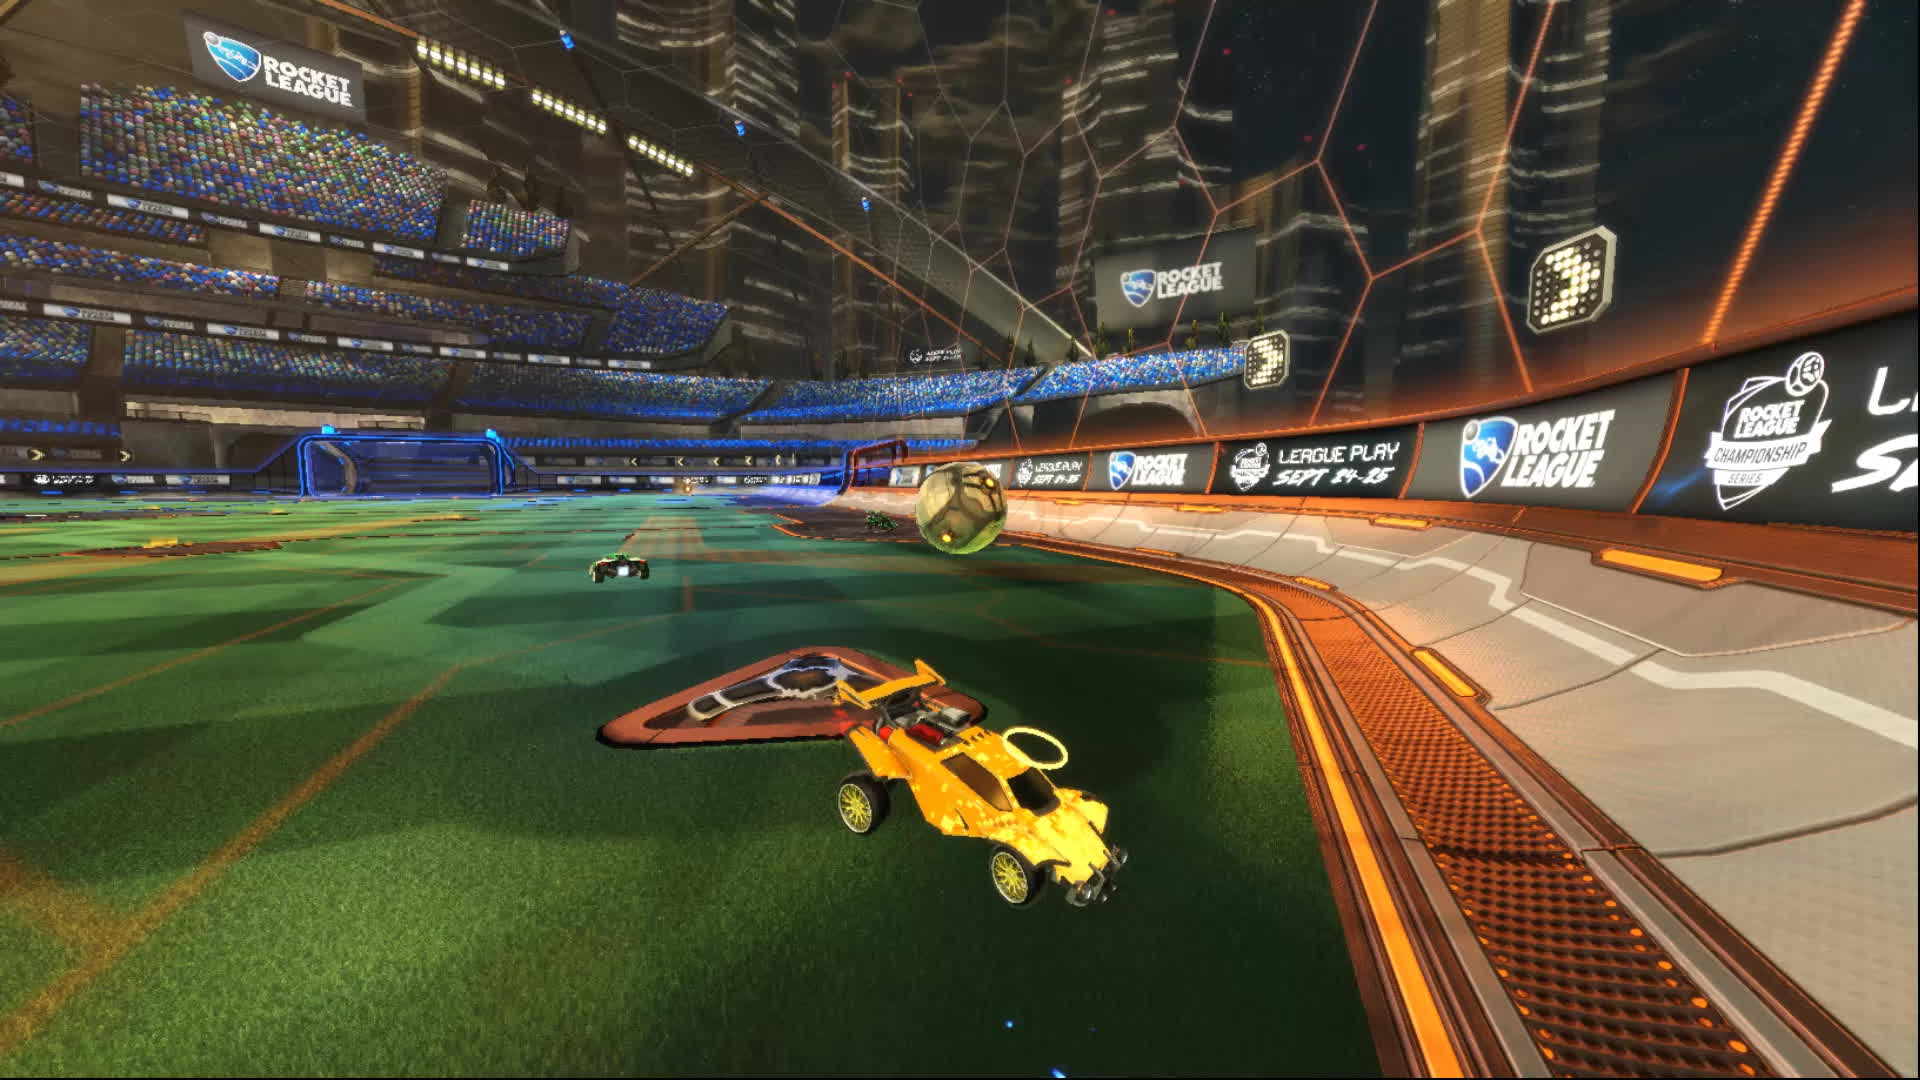 Rocket league, gifsthatkeepongiving, rocketleague, Palms are sweaty GIFs